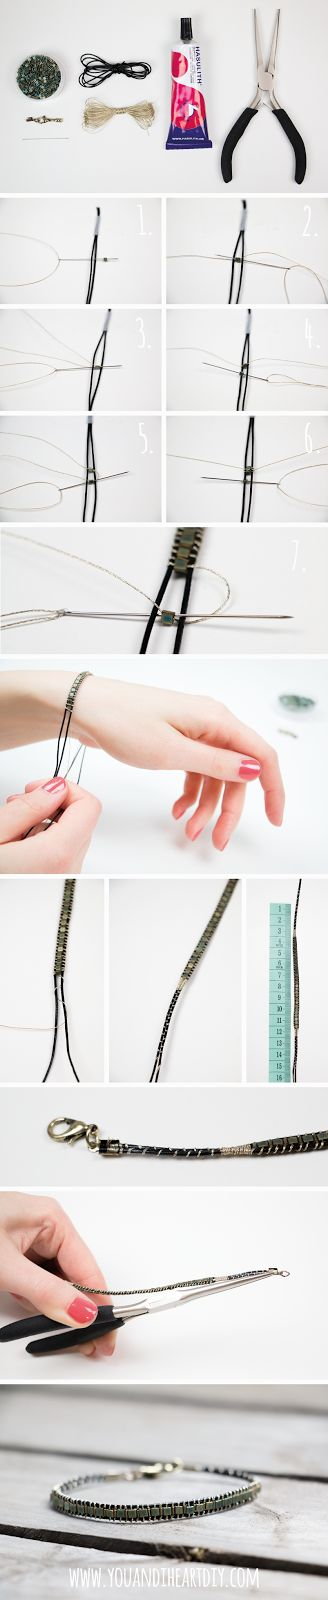 You and I ♥ DIY: DIY Perlenarmband